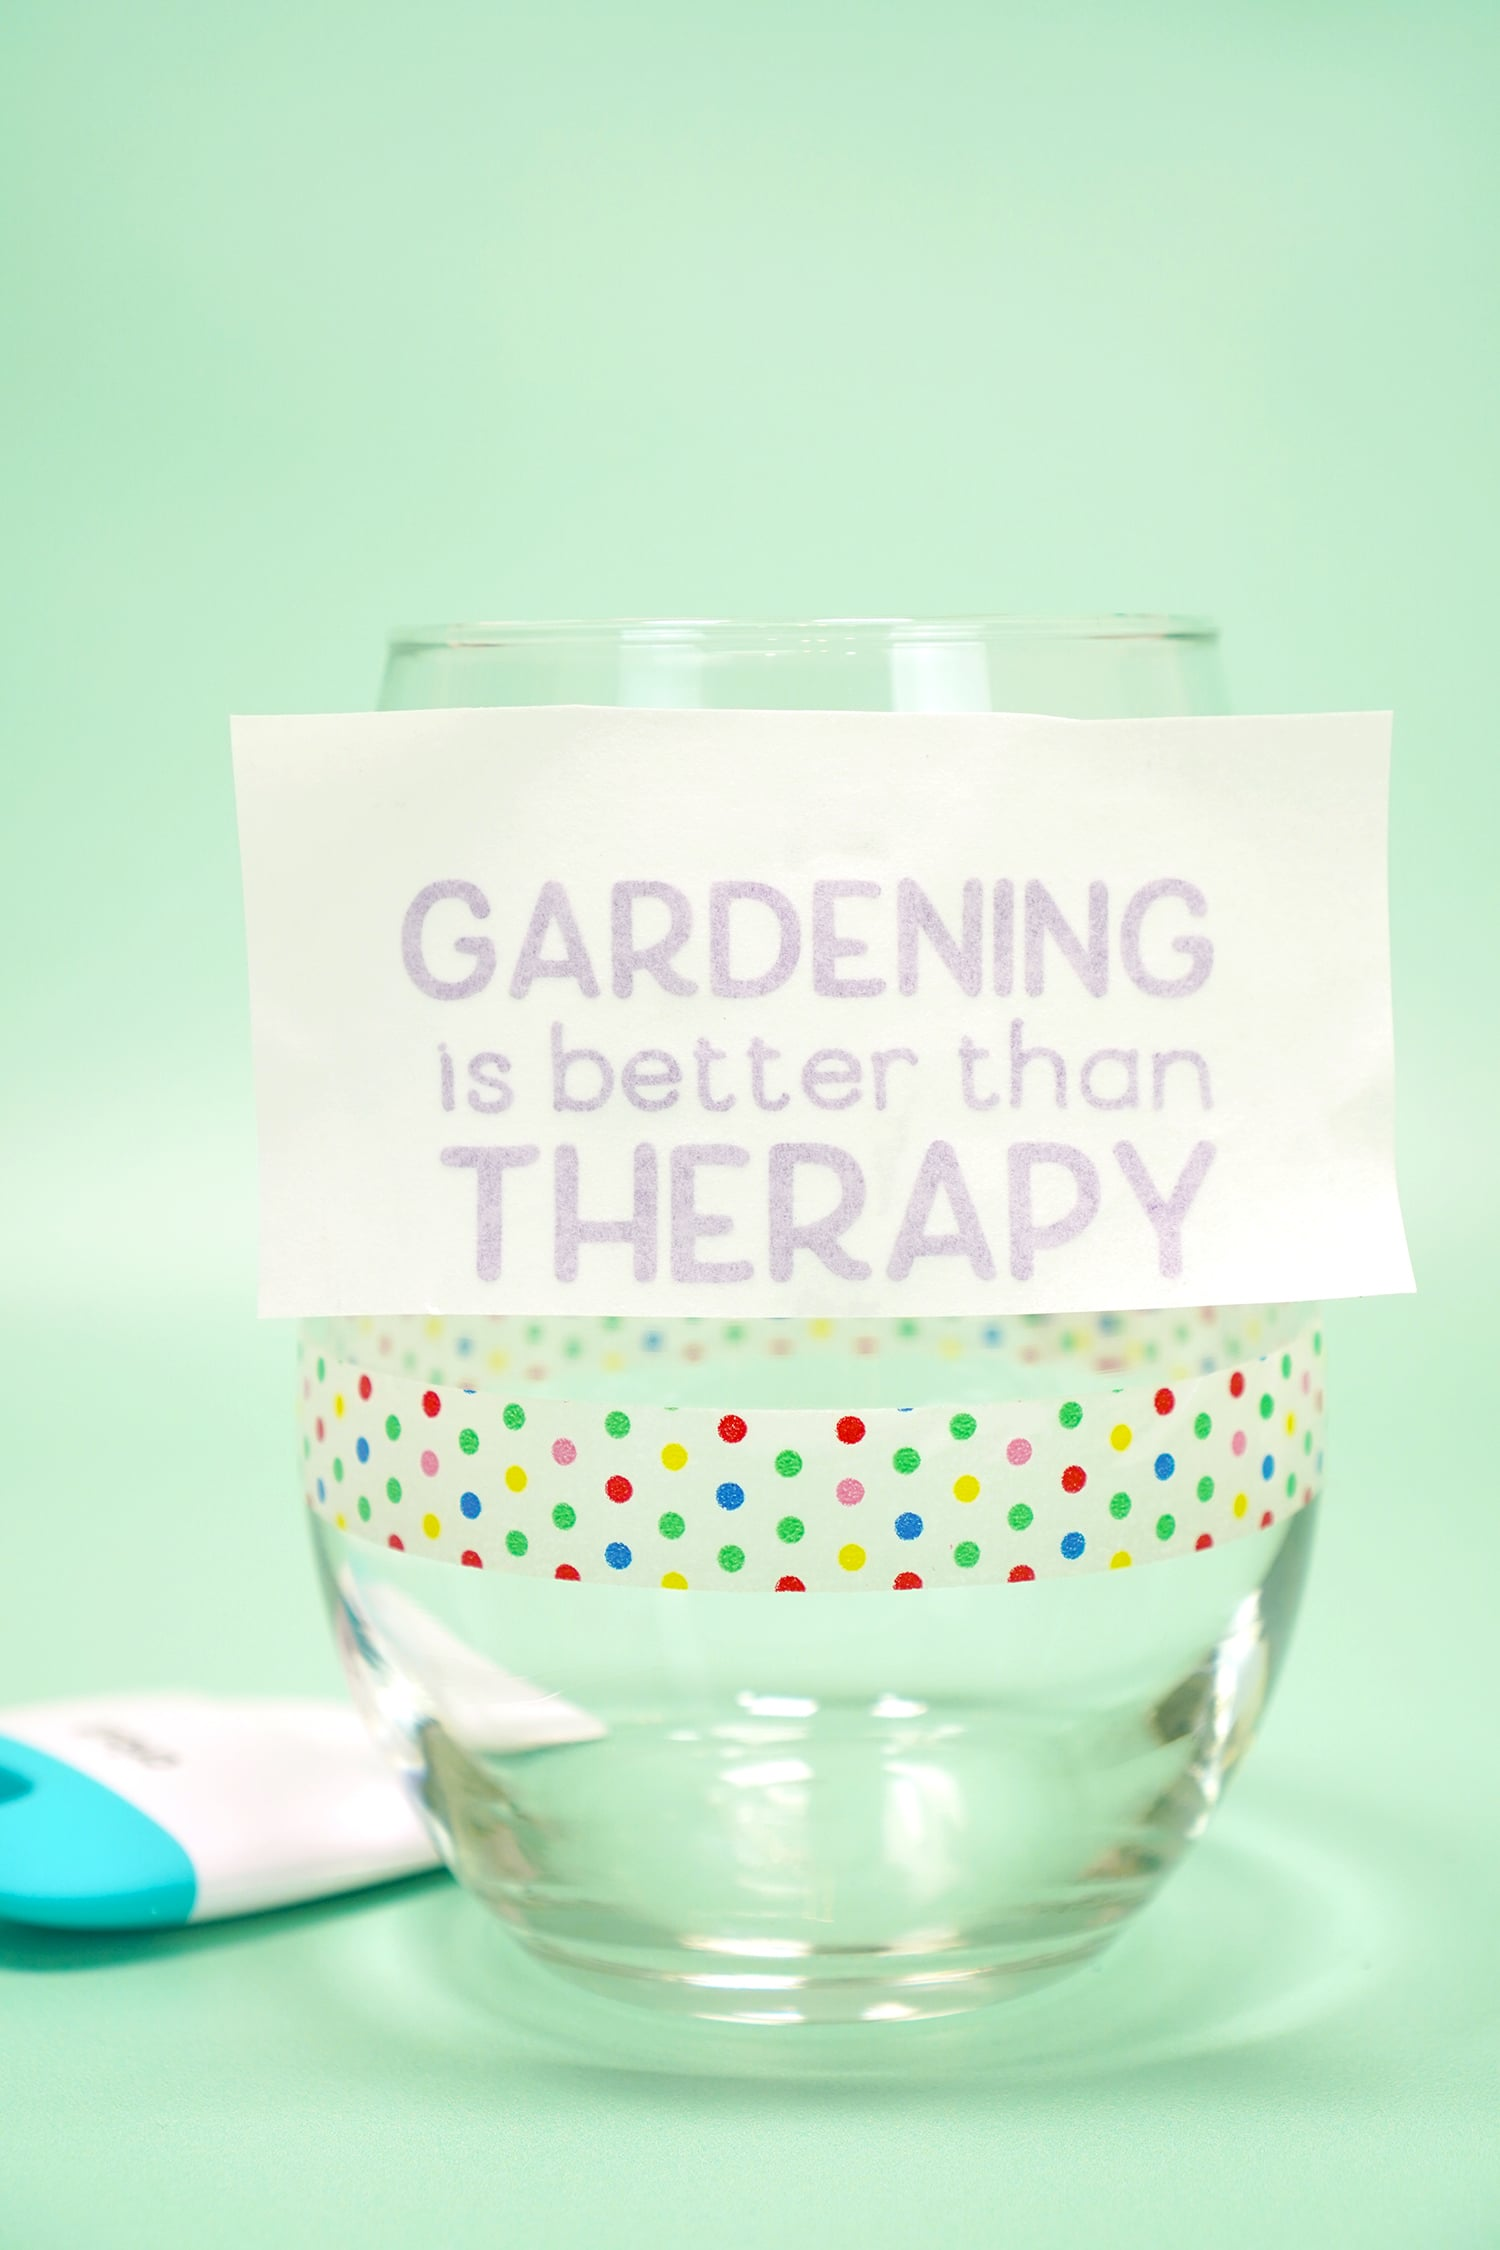 """Applying """"Gardening is Better Than Therapy"""" purple shimmer vinyl to a clear stemless wine glass on mint green background"""